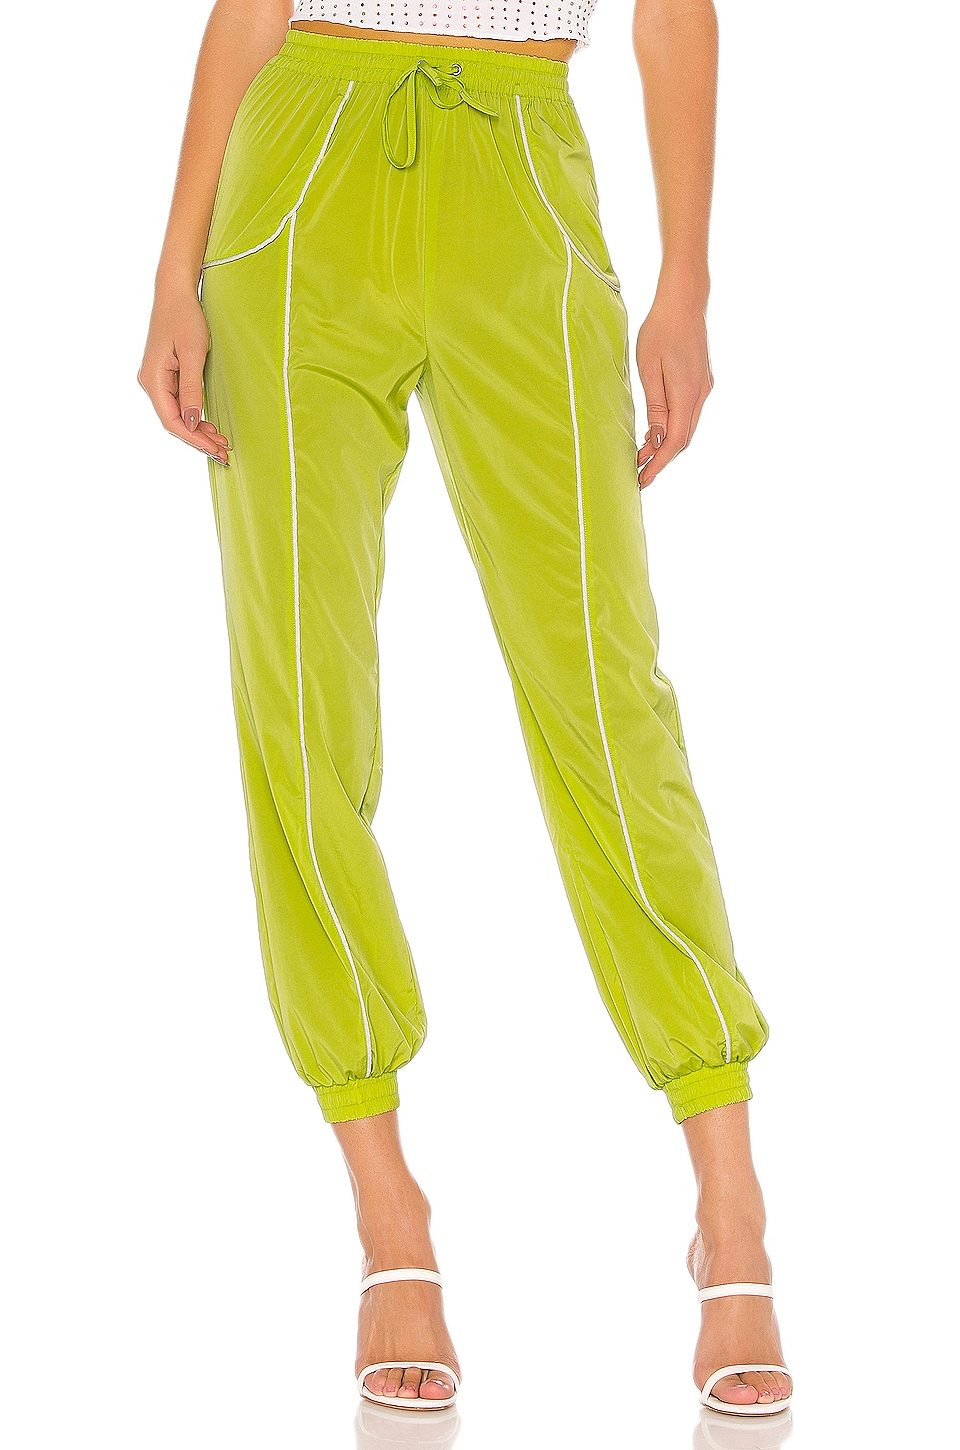 Lovers + Friends Liz Track Pant in Green